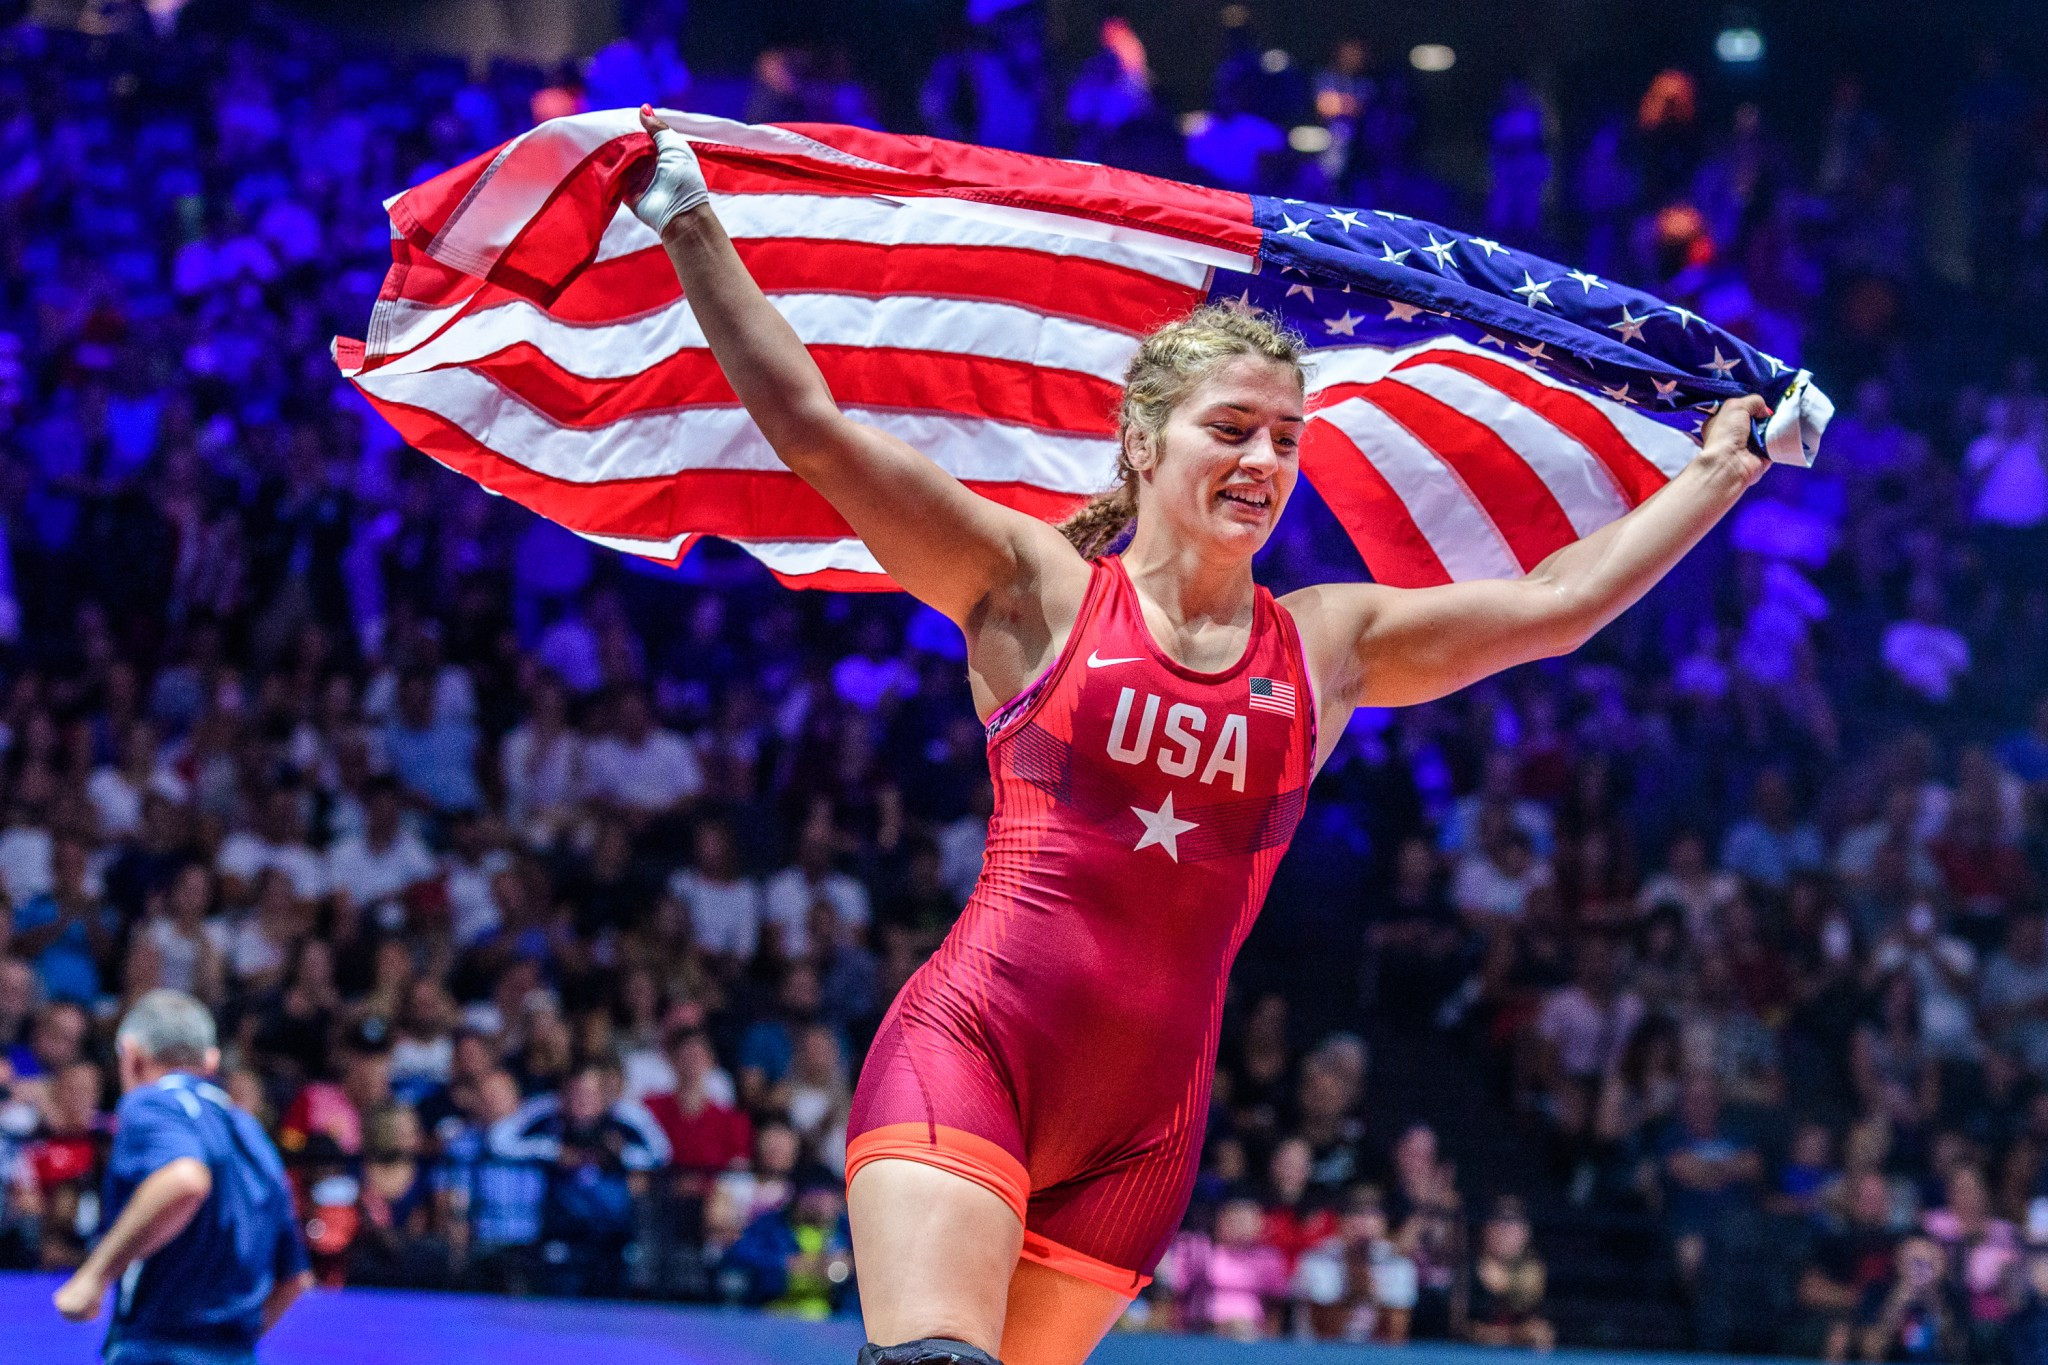 Maroulis storms to 58kg gold medal without conceding a point at UWW World Championships